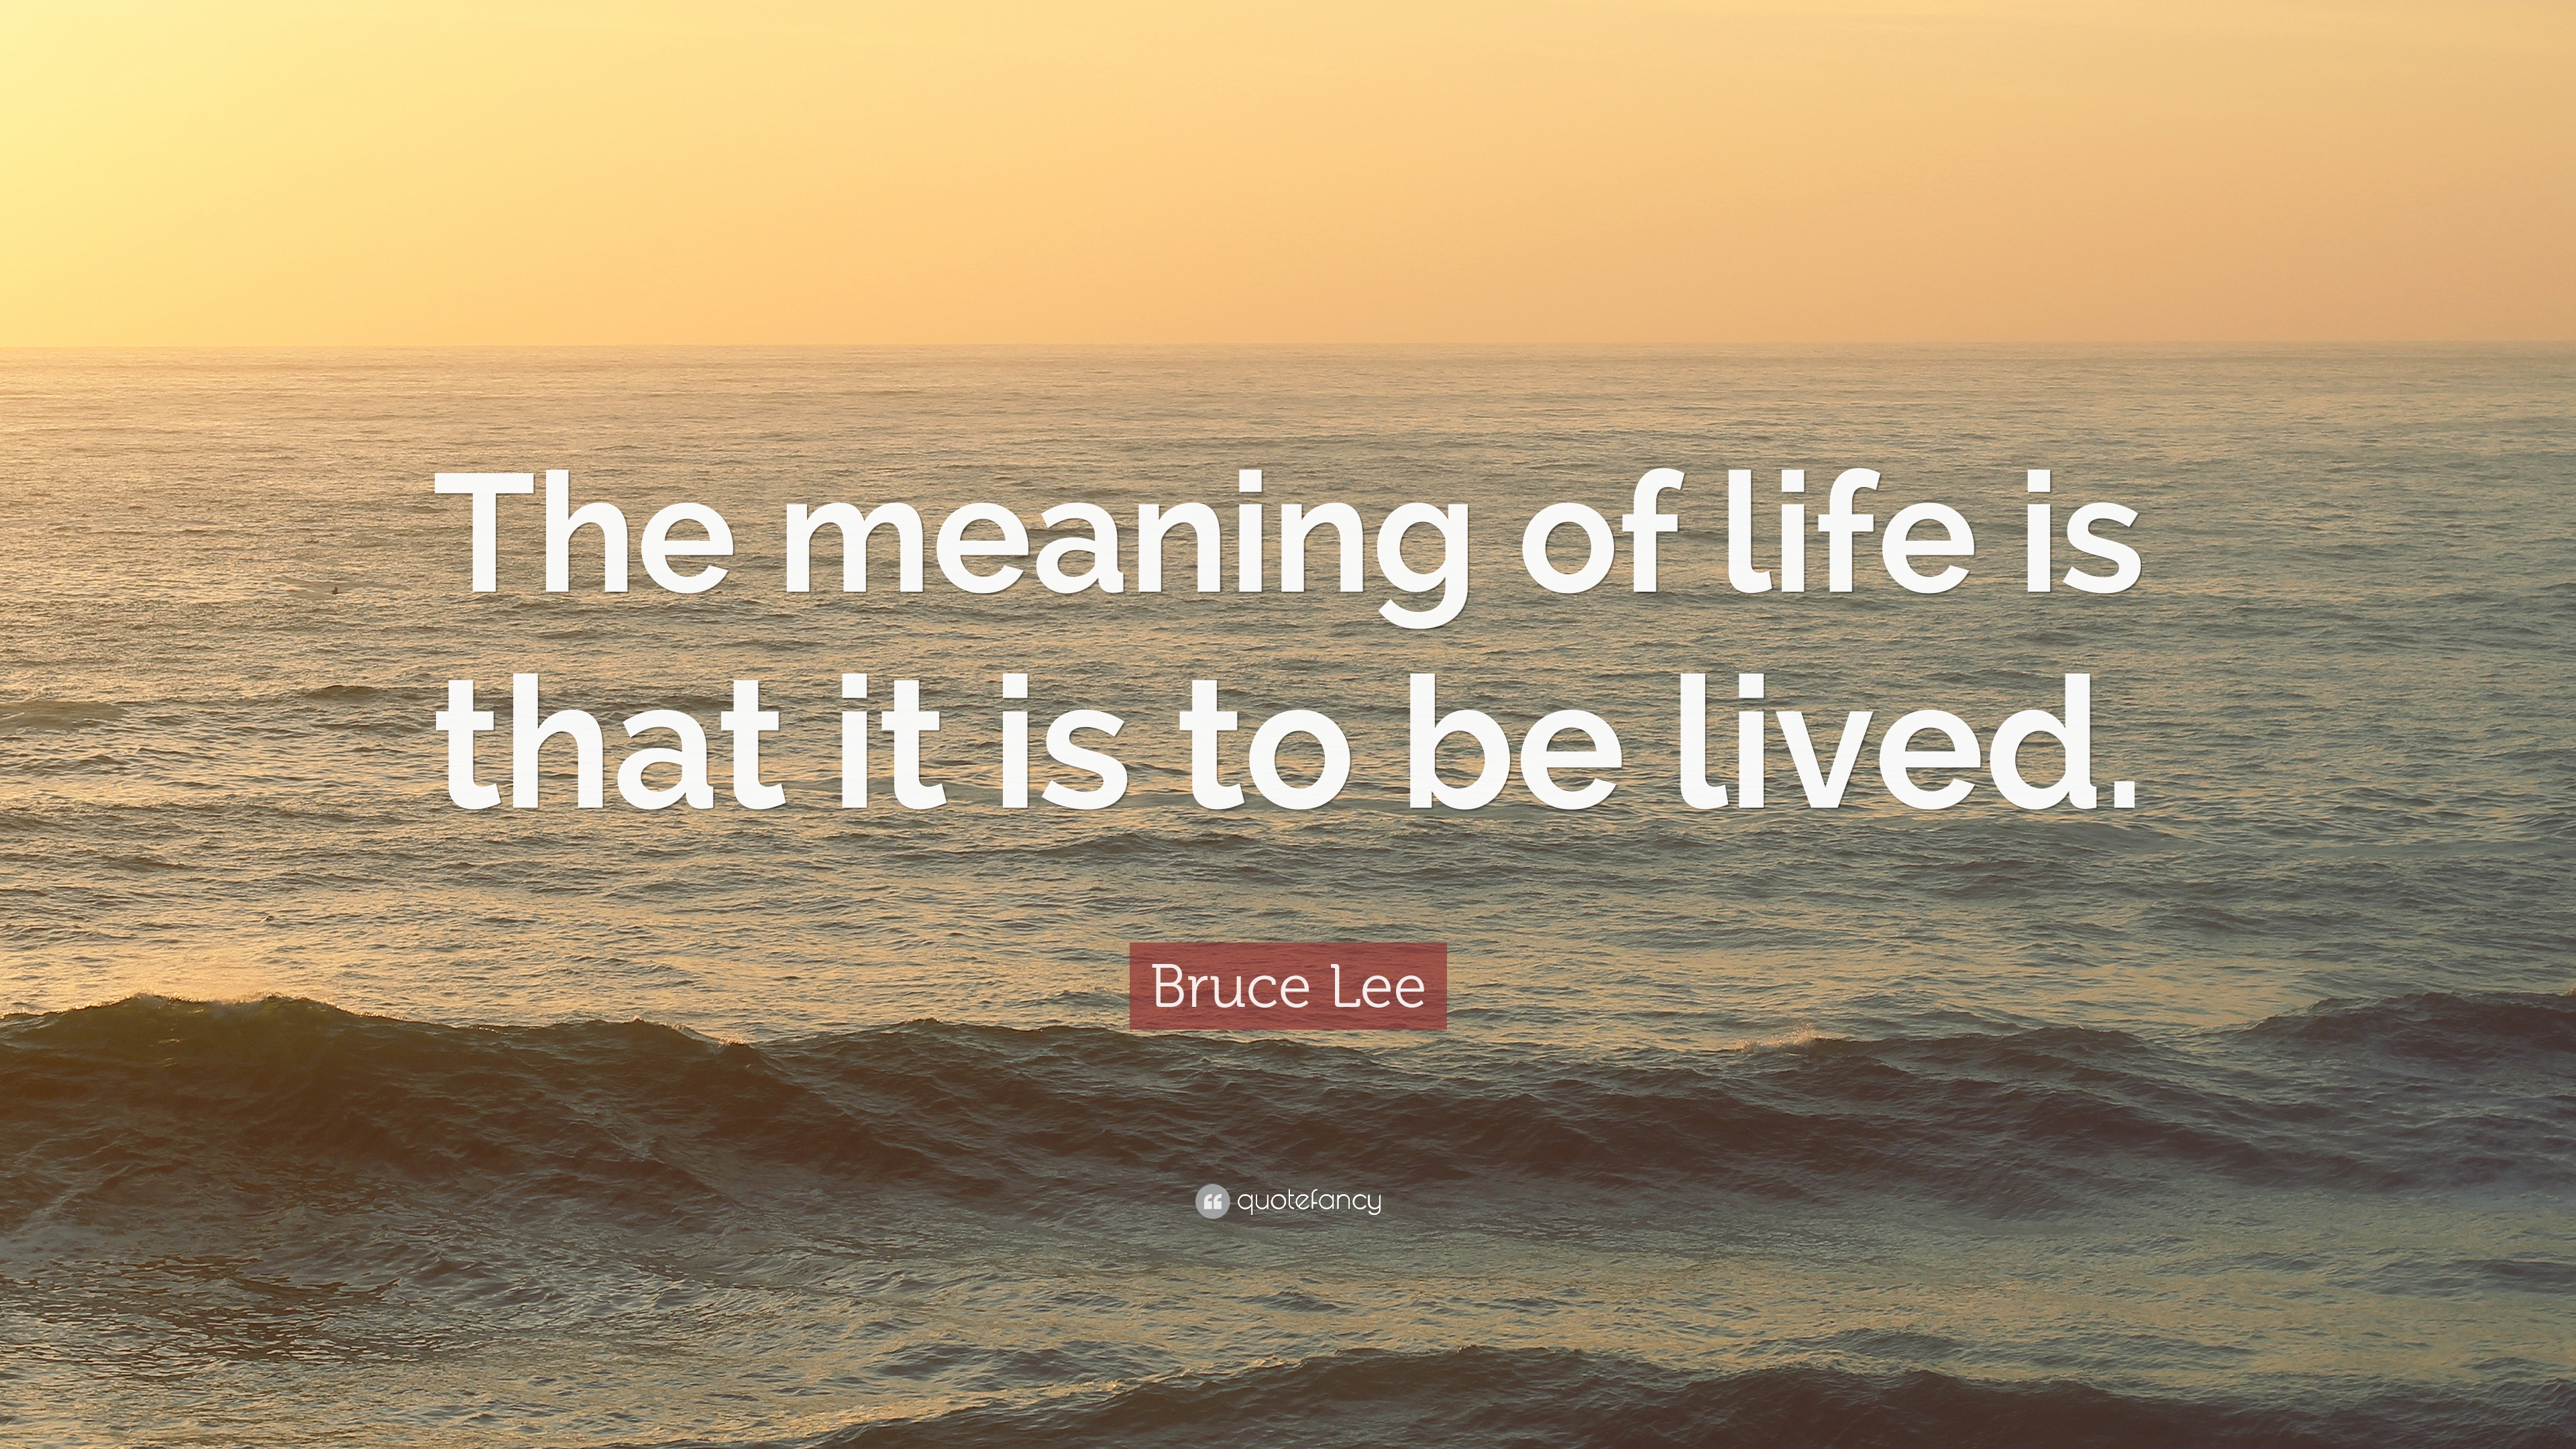 Bruce Lee Quote The Meaning Of Life Is That It Is To Be Lived